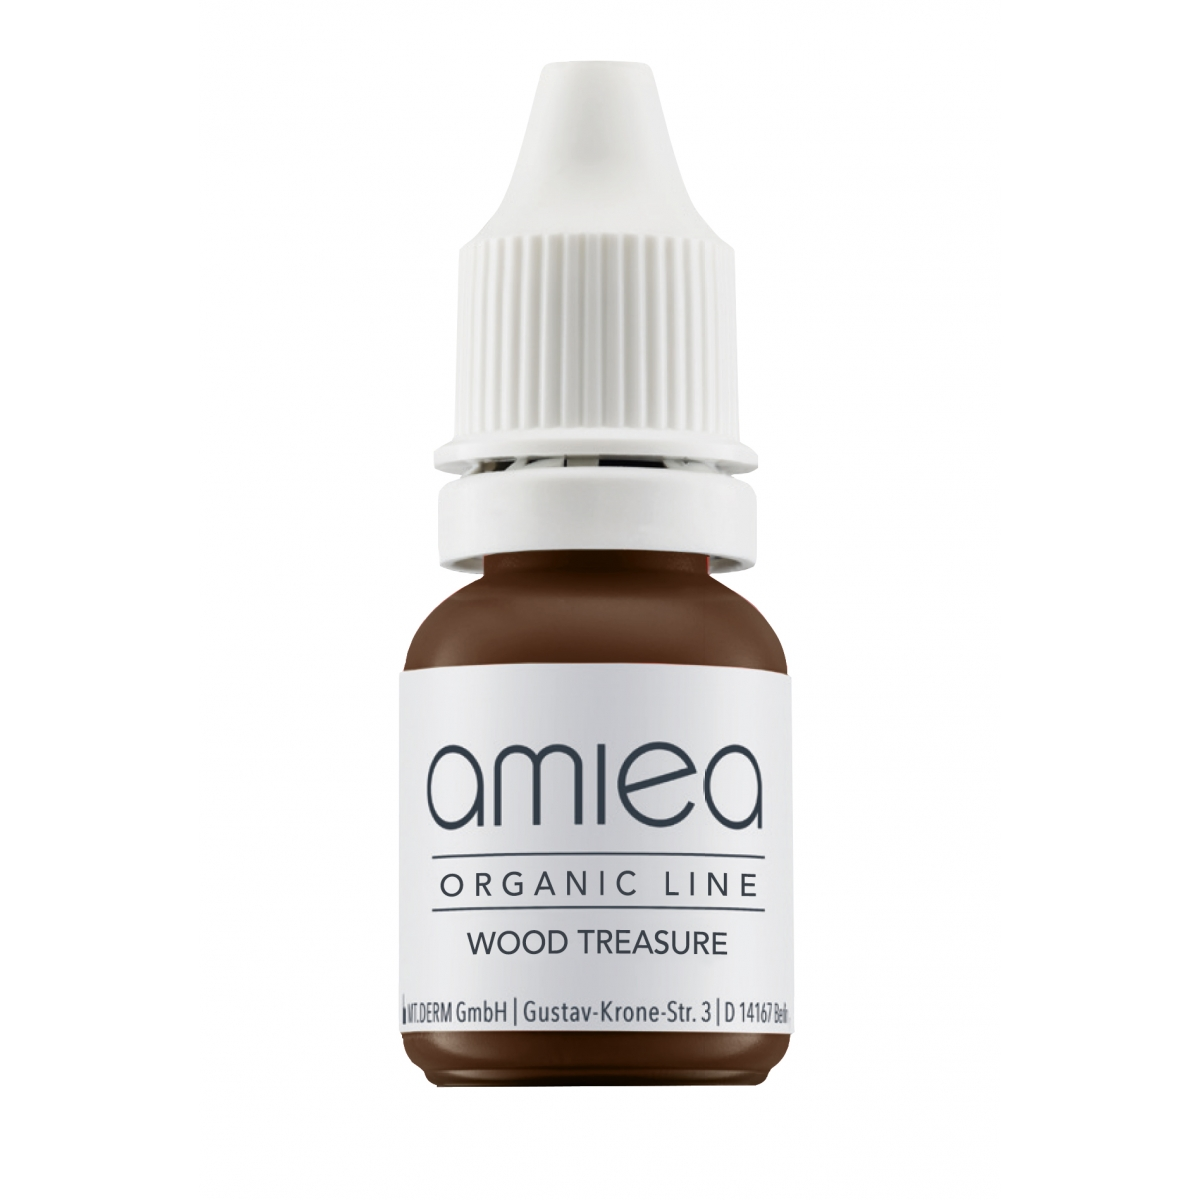 ORGANIC LINE (10ml) - PIGMENT WOOD TREASURE ORGANICLINE AMIEA (10 ml)